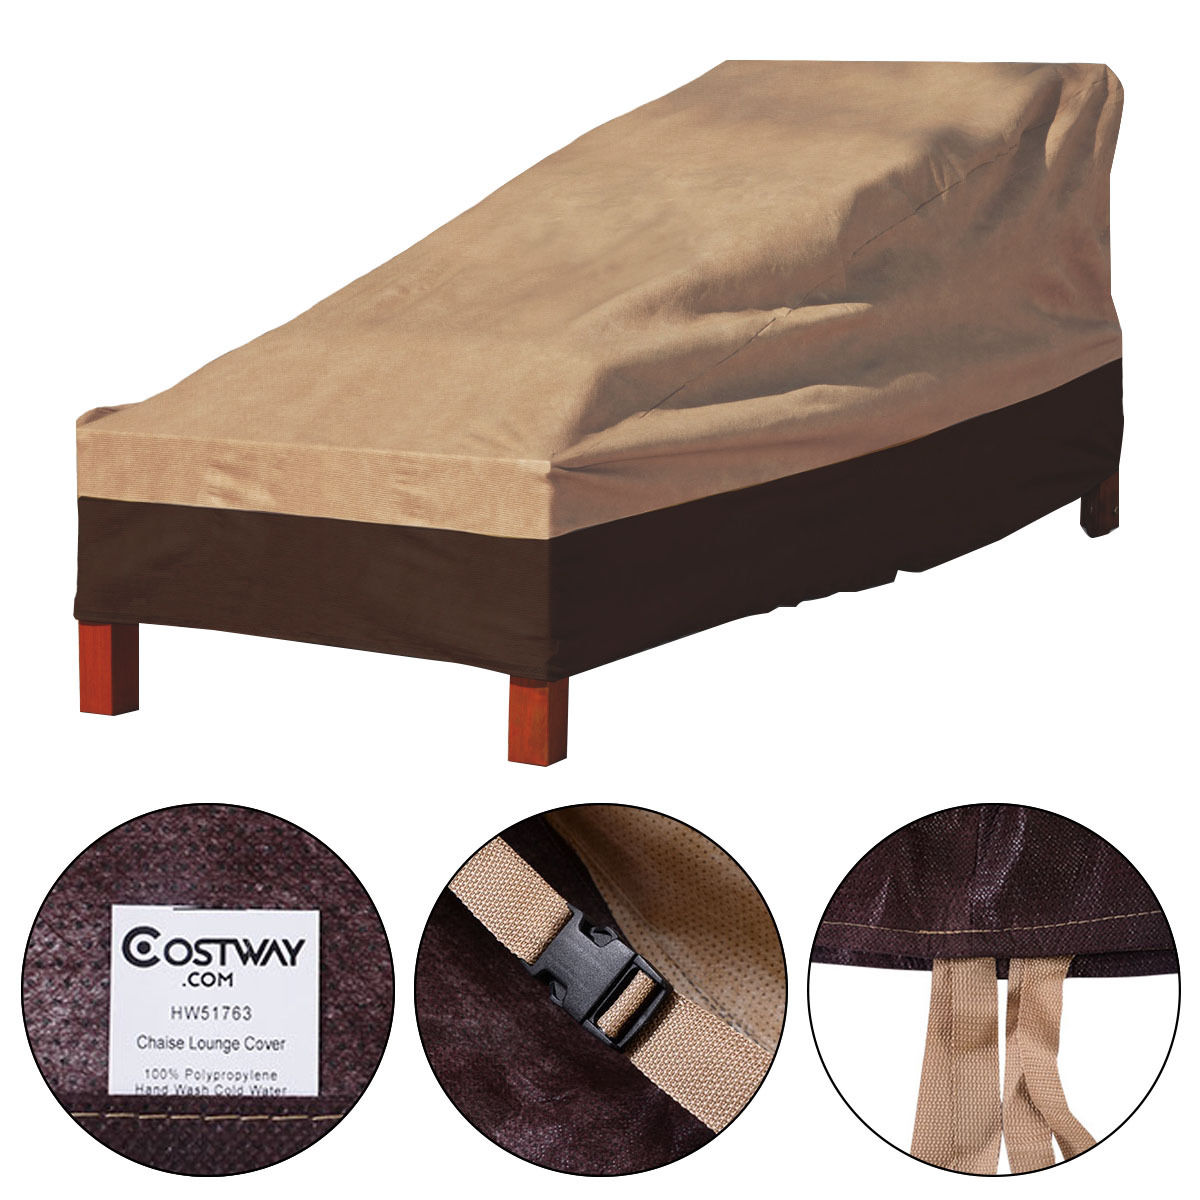 Costway Waterproof Outdoor Patio Chaise Lounge Chair Furniture Cover Protection